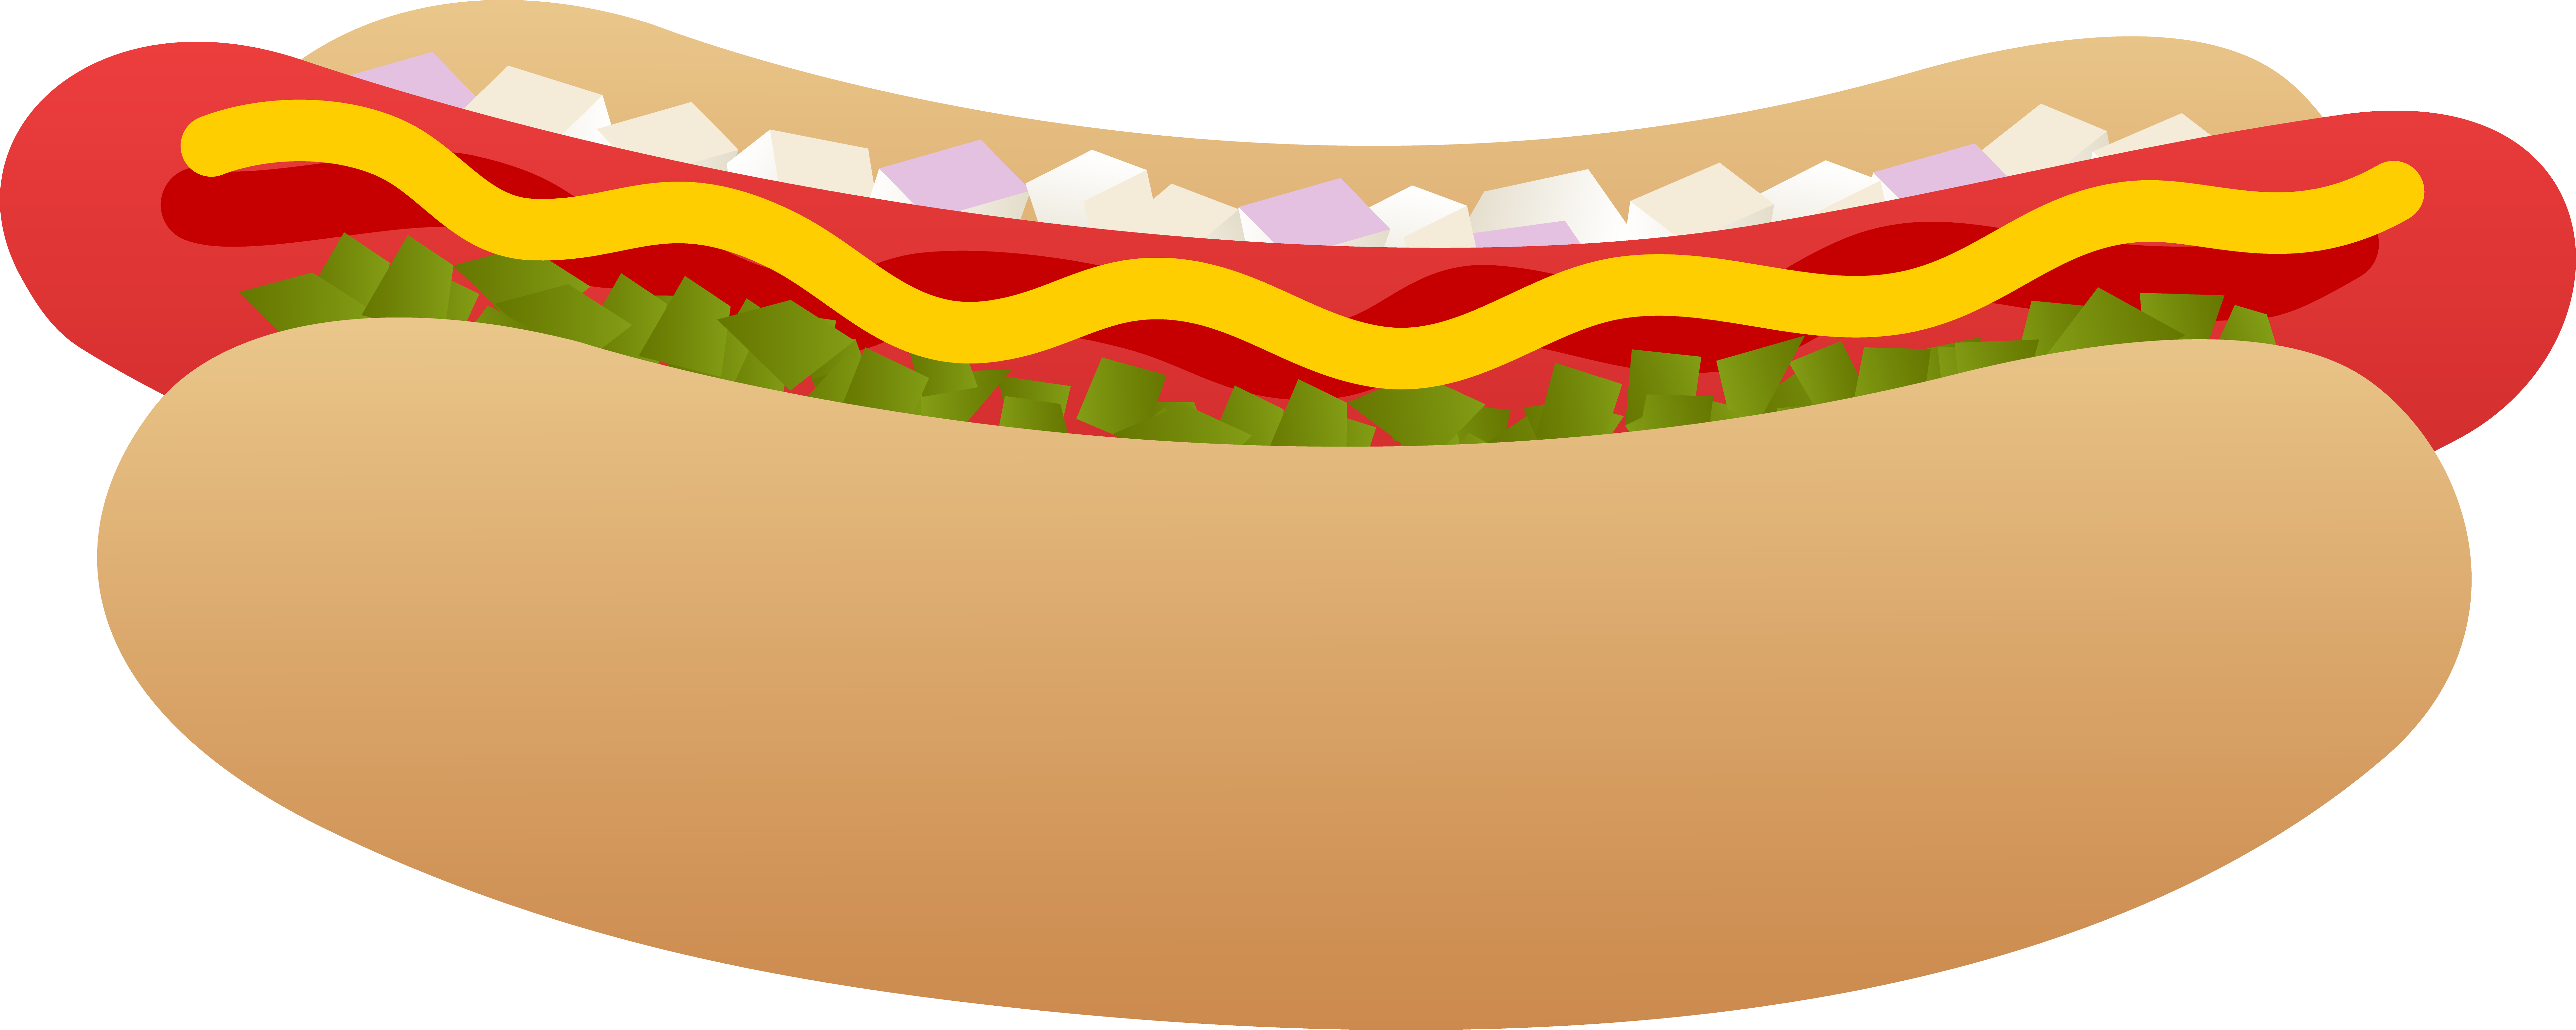 Clip Art Hotdog Clip Art hotdog clipart panda free images